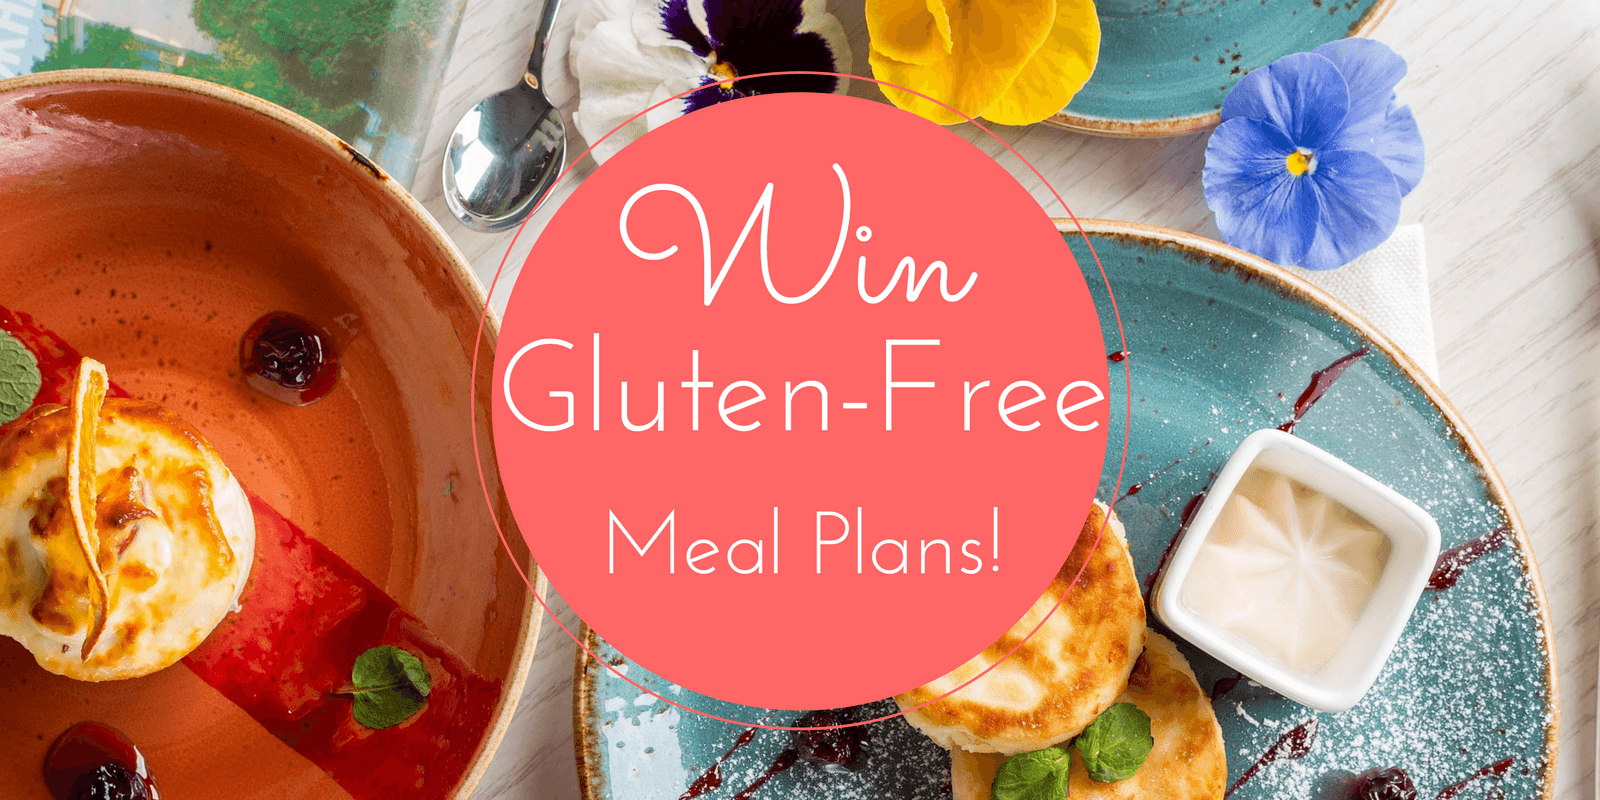 Win gluten-free meal plans with Nourish Play Love